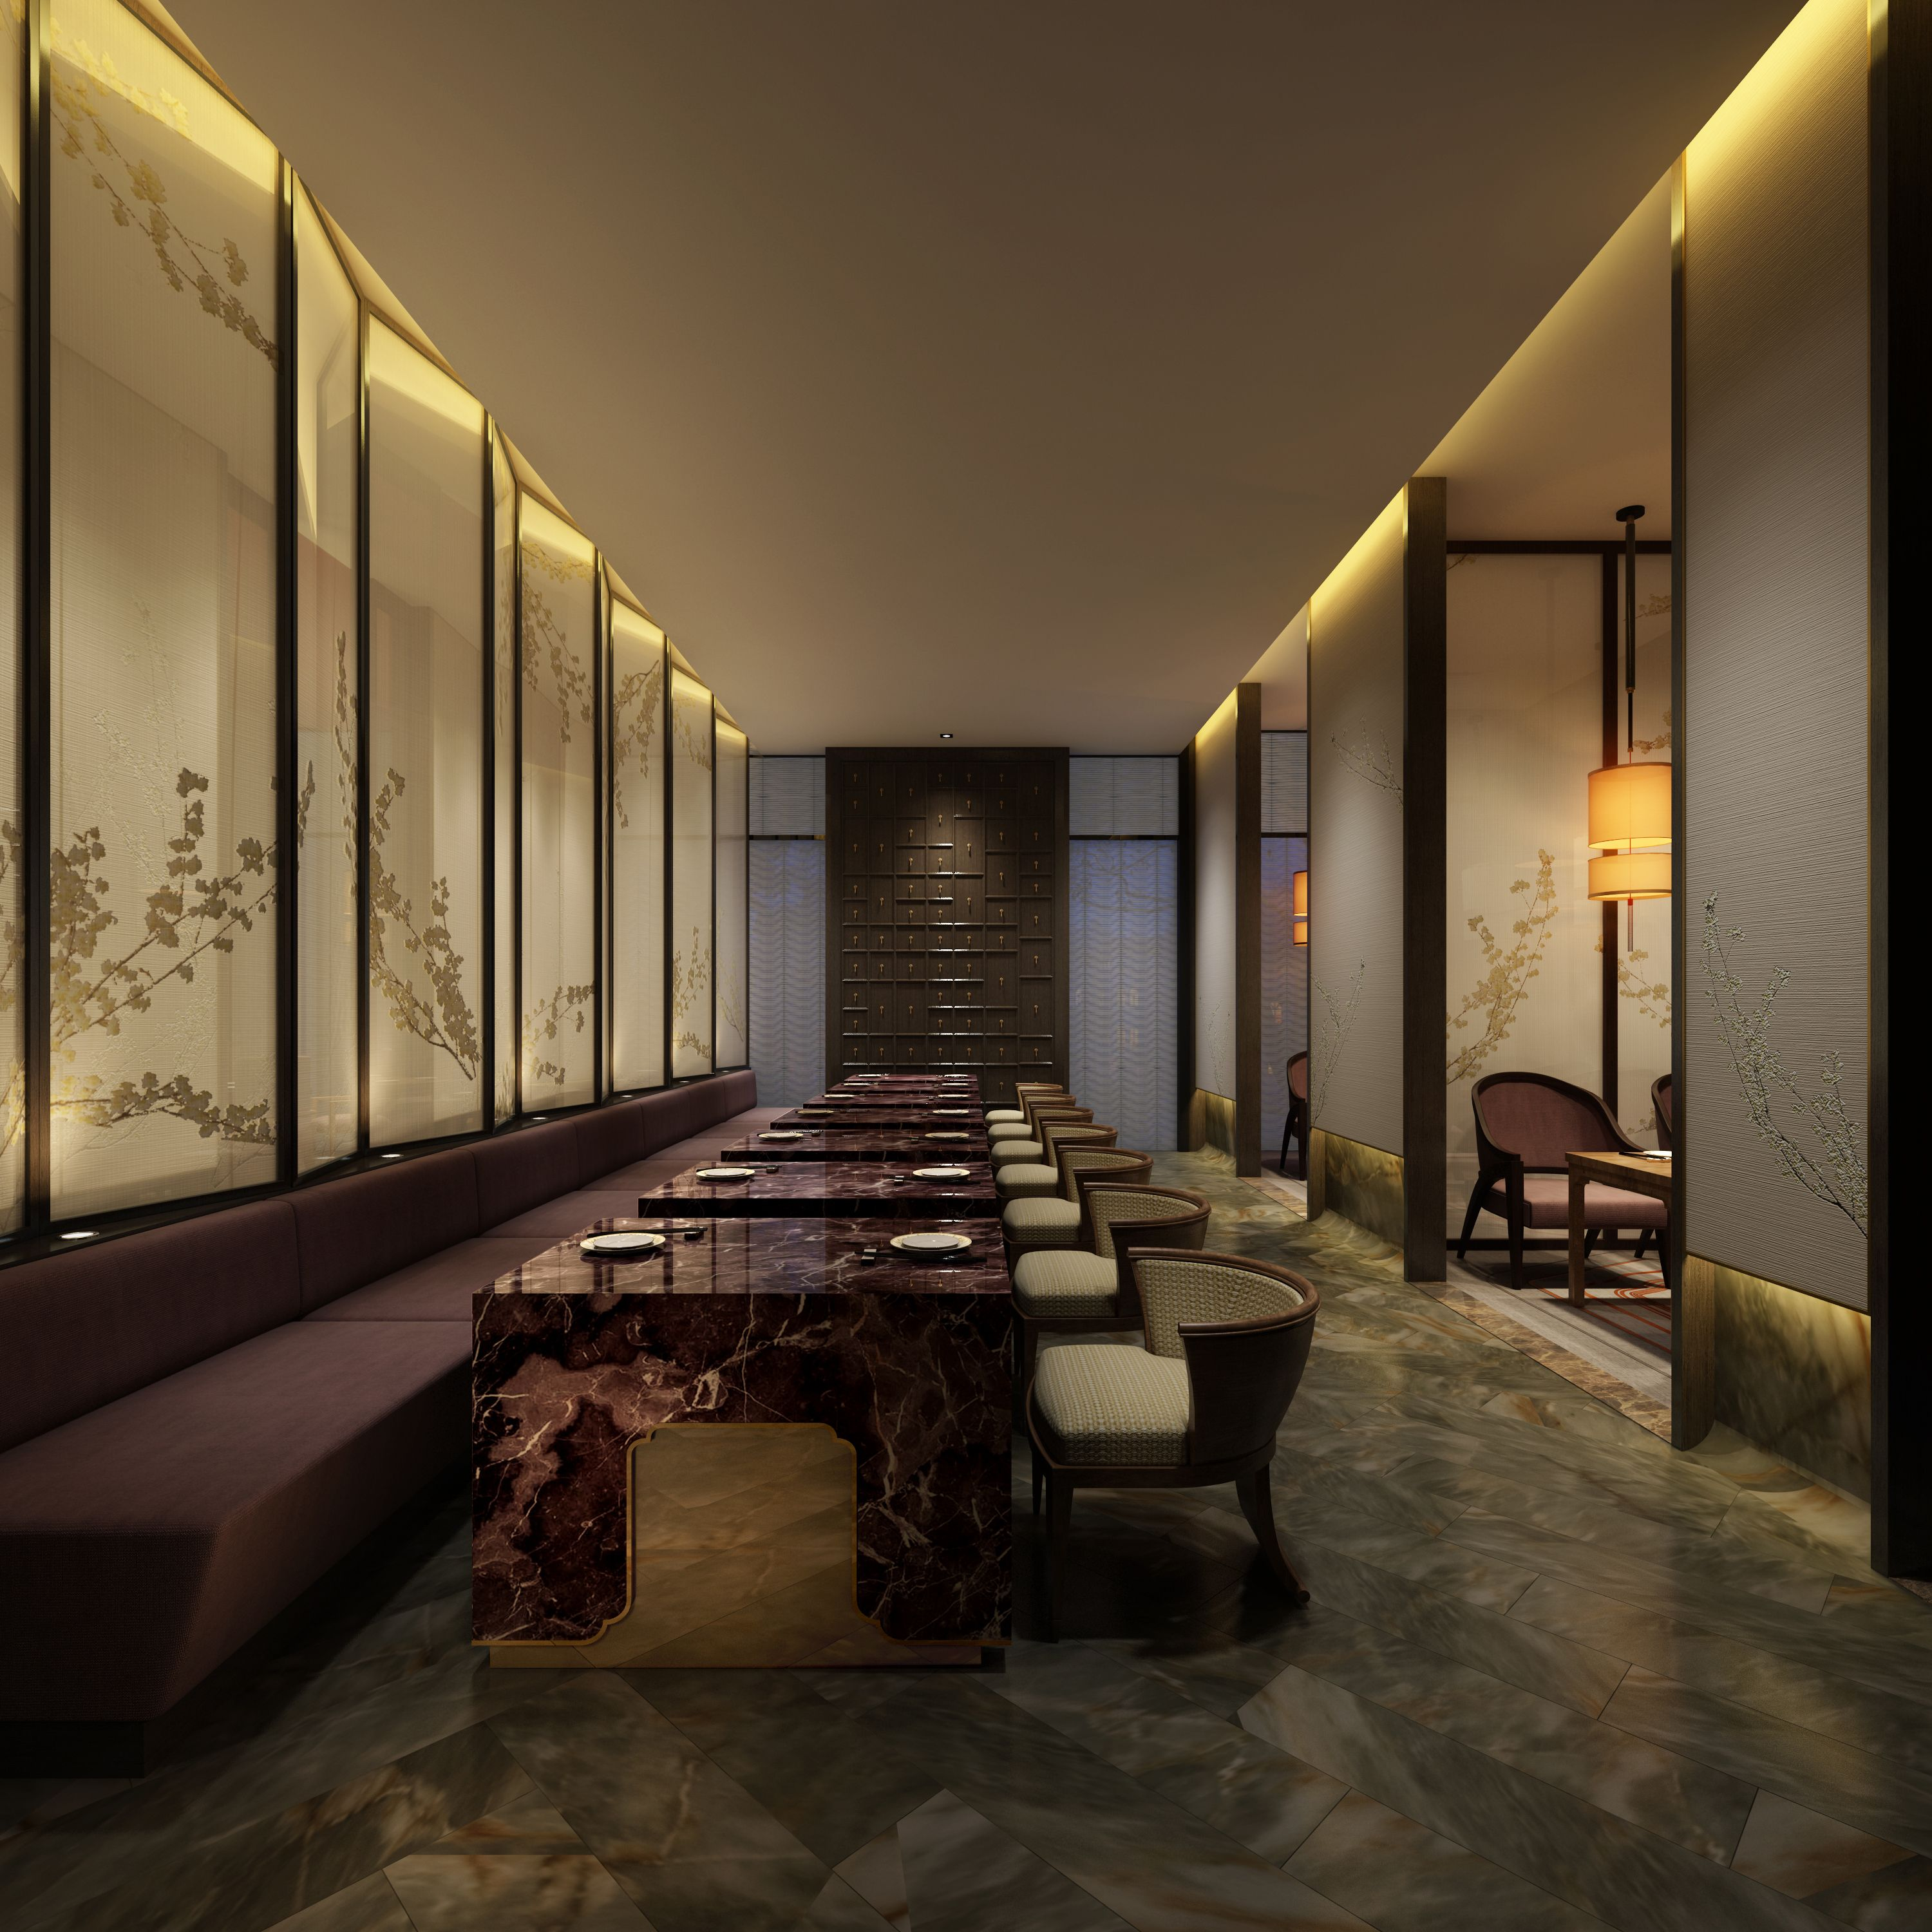 39 The Dragon 39 Chinese Restaurant 39 S Interior Design Hangzhou Dylan Wang Design Restaurant